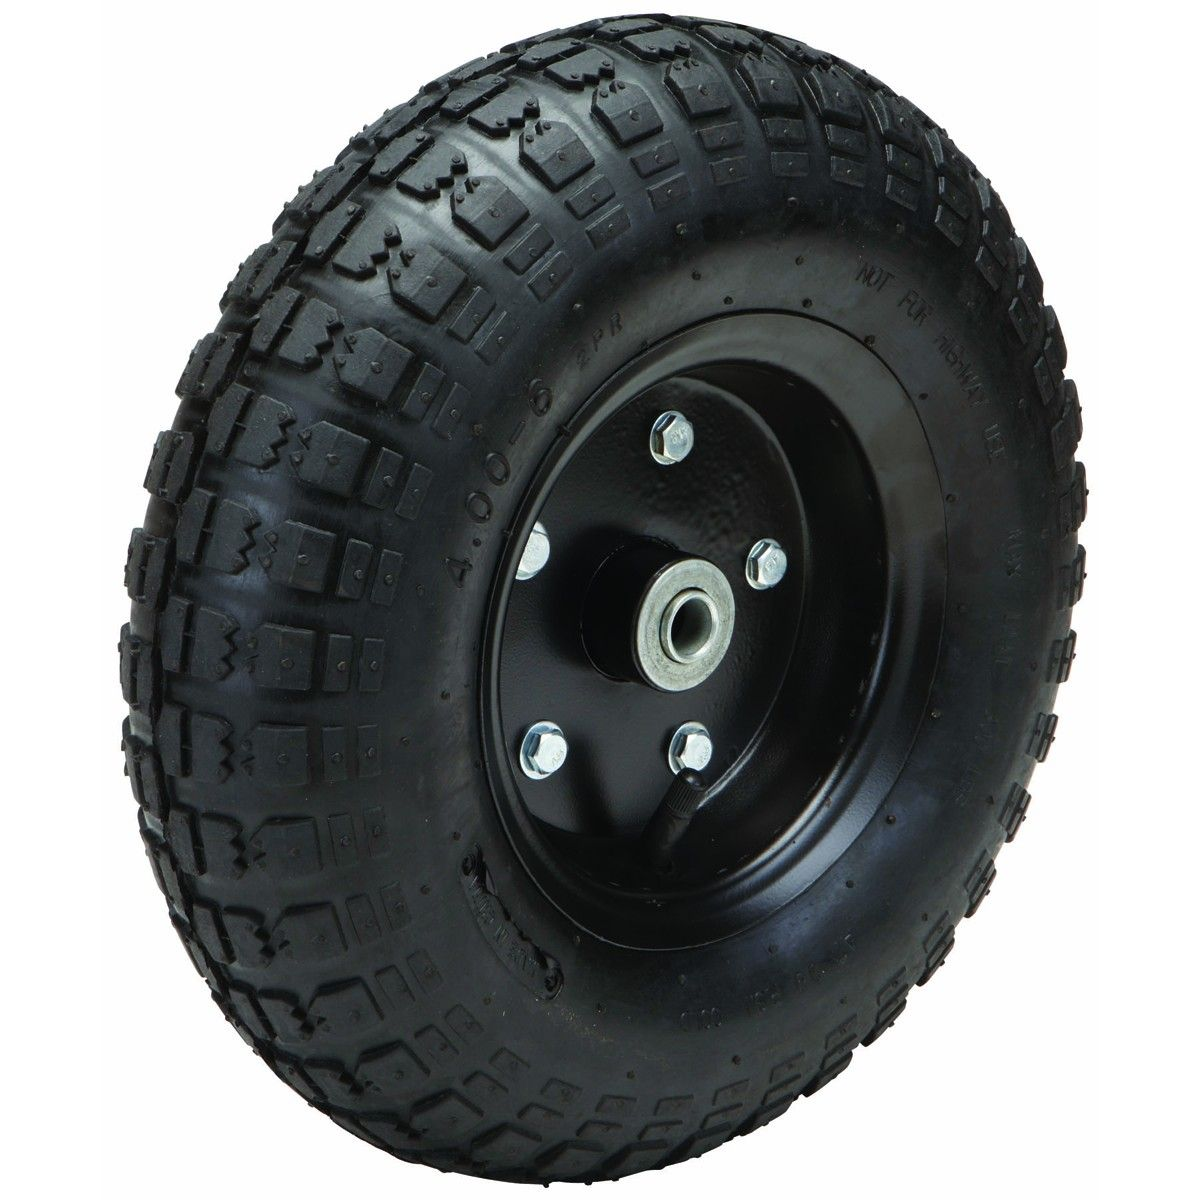 13 In Pneumatic Tire With Black Hub In 2020 Wagon Cart Black Steel Tire